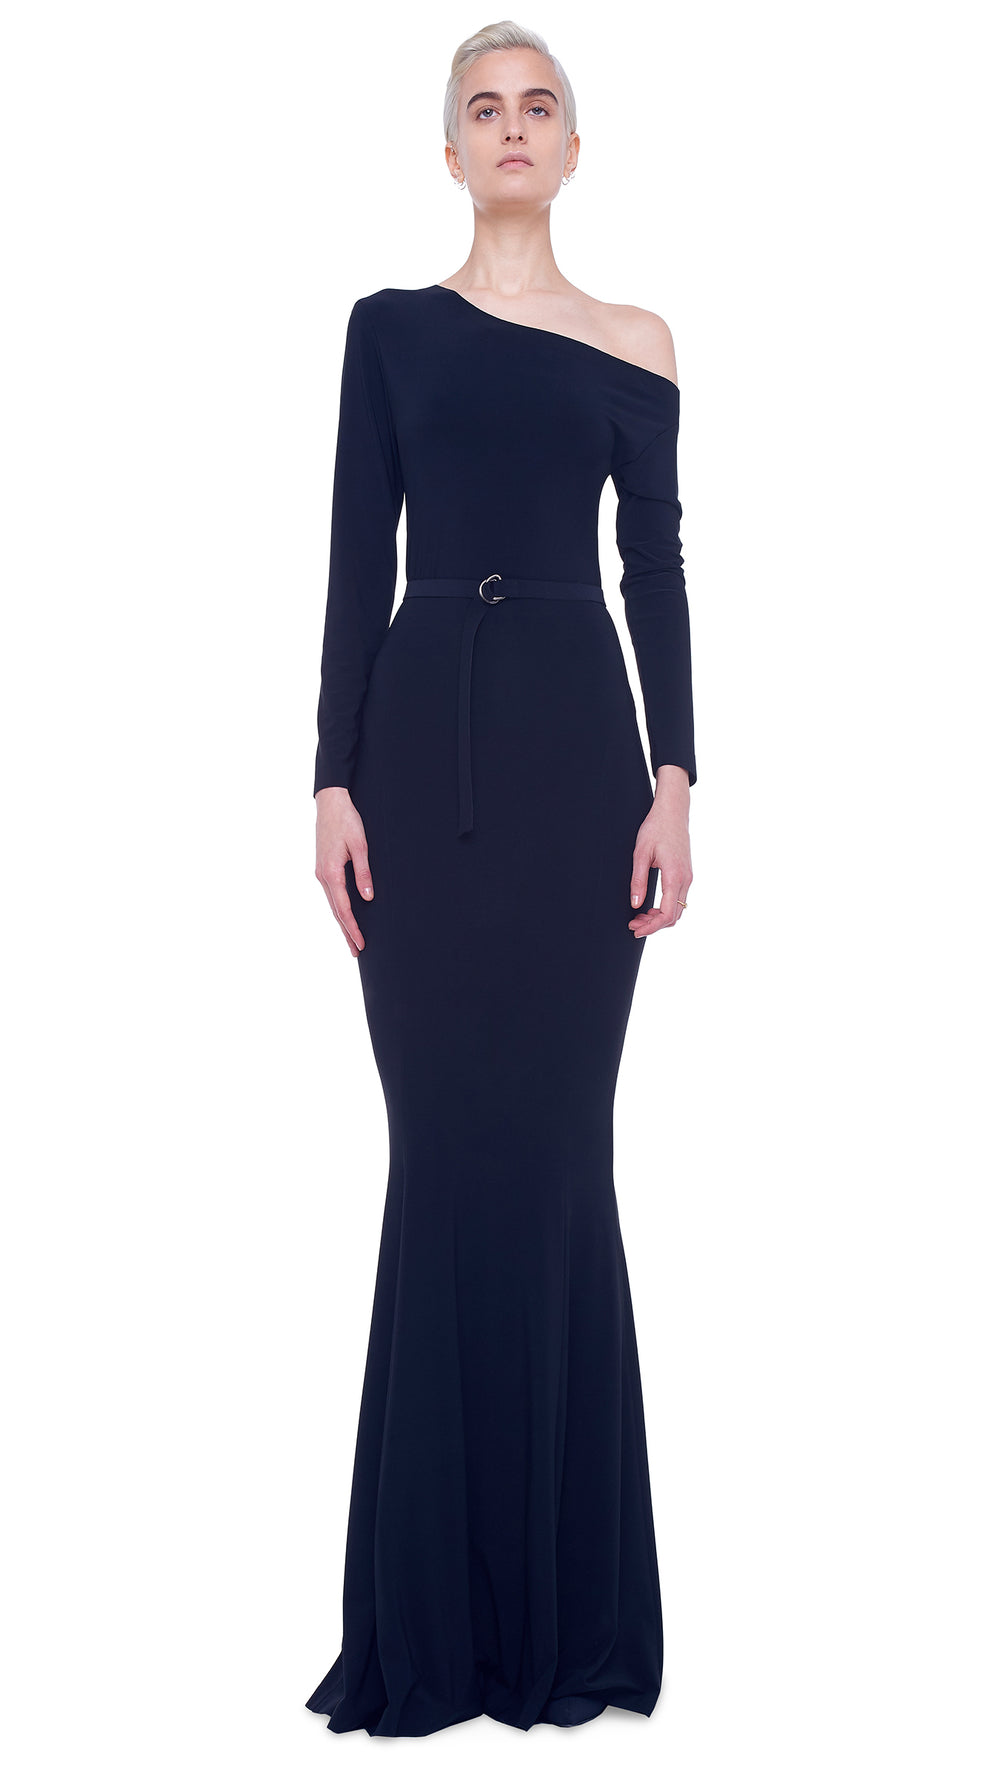 LONG SLEEVE DROP SHOULDER FISHTAIL GOWN - 1